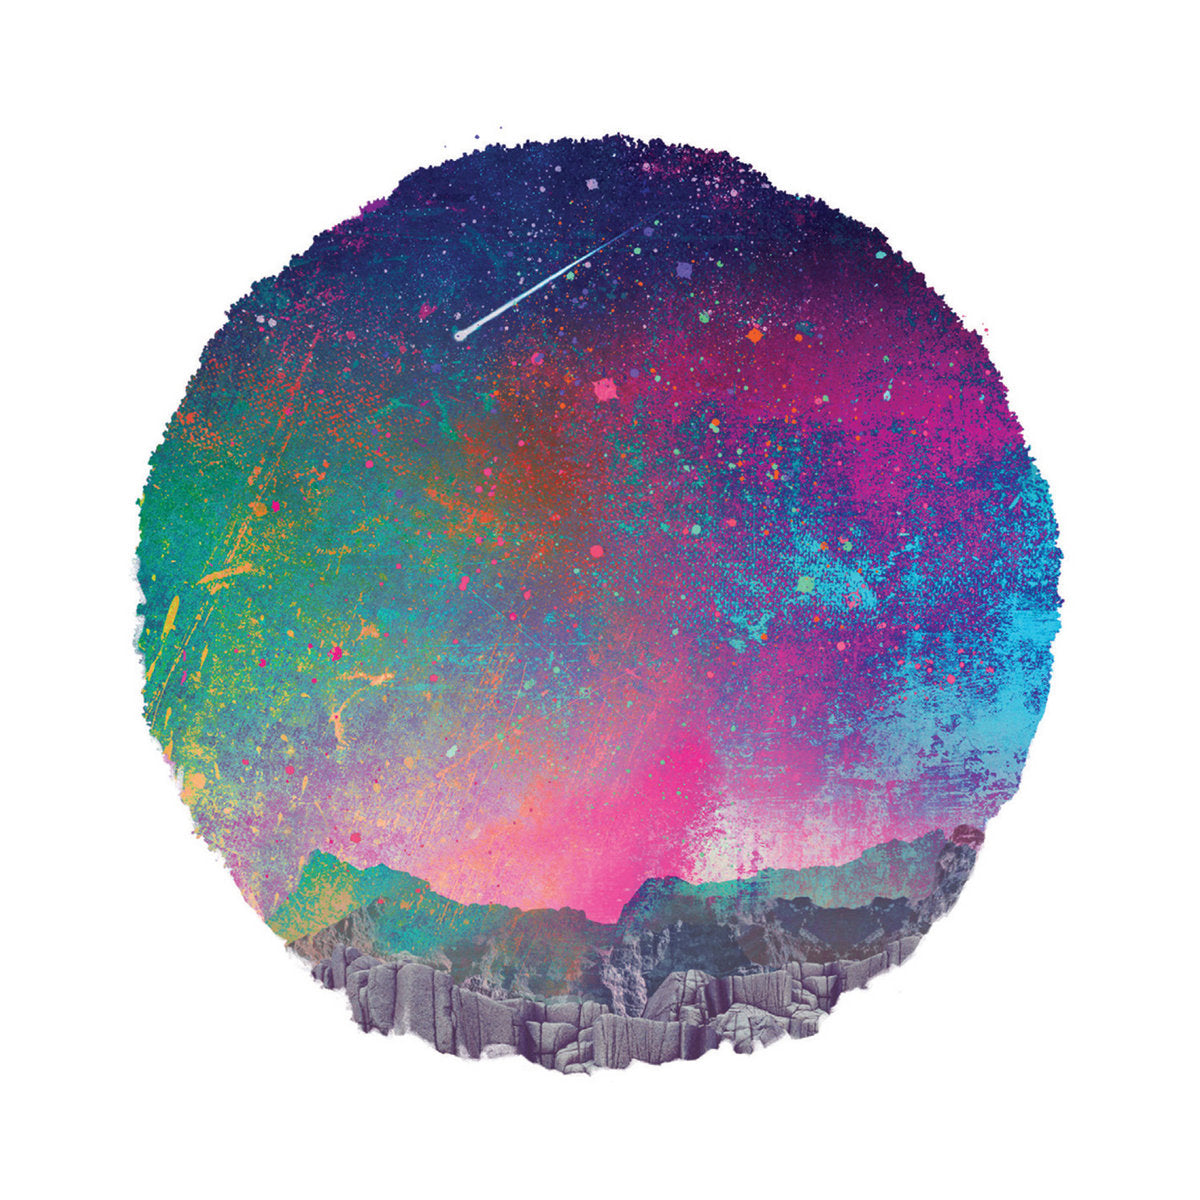 KHRUANGBIN - THE UNIVERSE SMILES UPON YOU - VINYL LP - Wah Wah Records